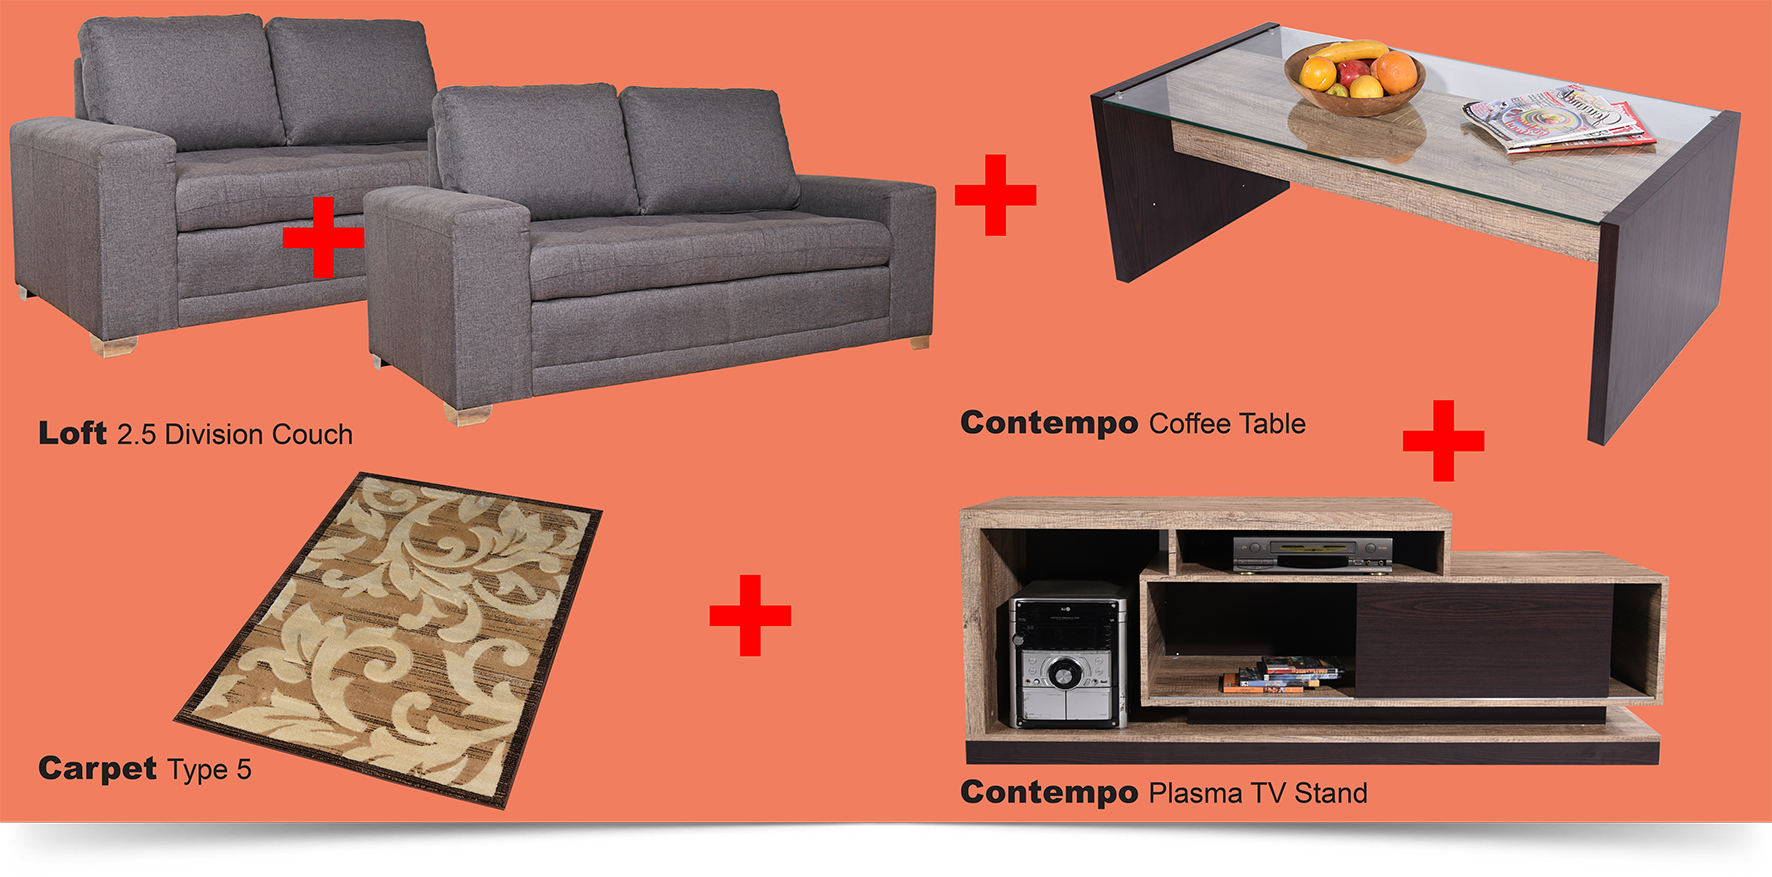 Living Room Furniture Package Deals Contempo Package Deal Save Time And Money With Our Package Deals